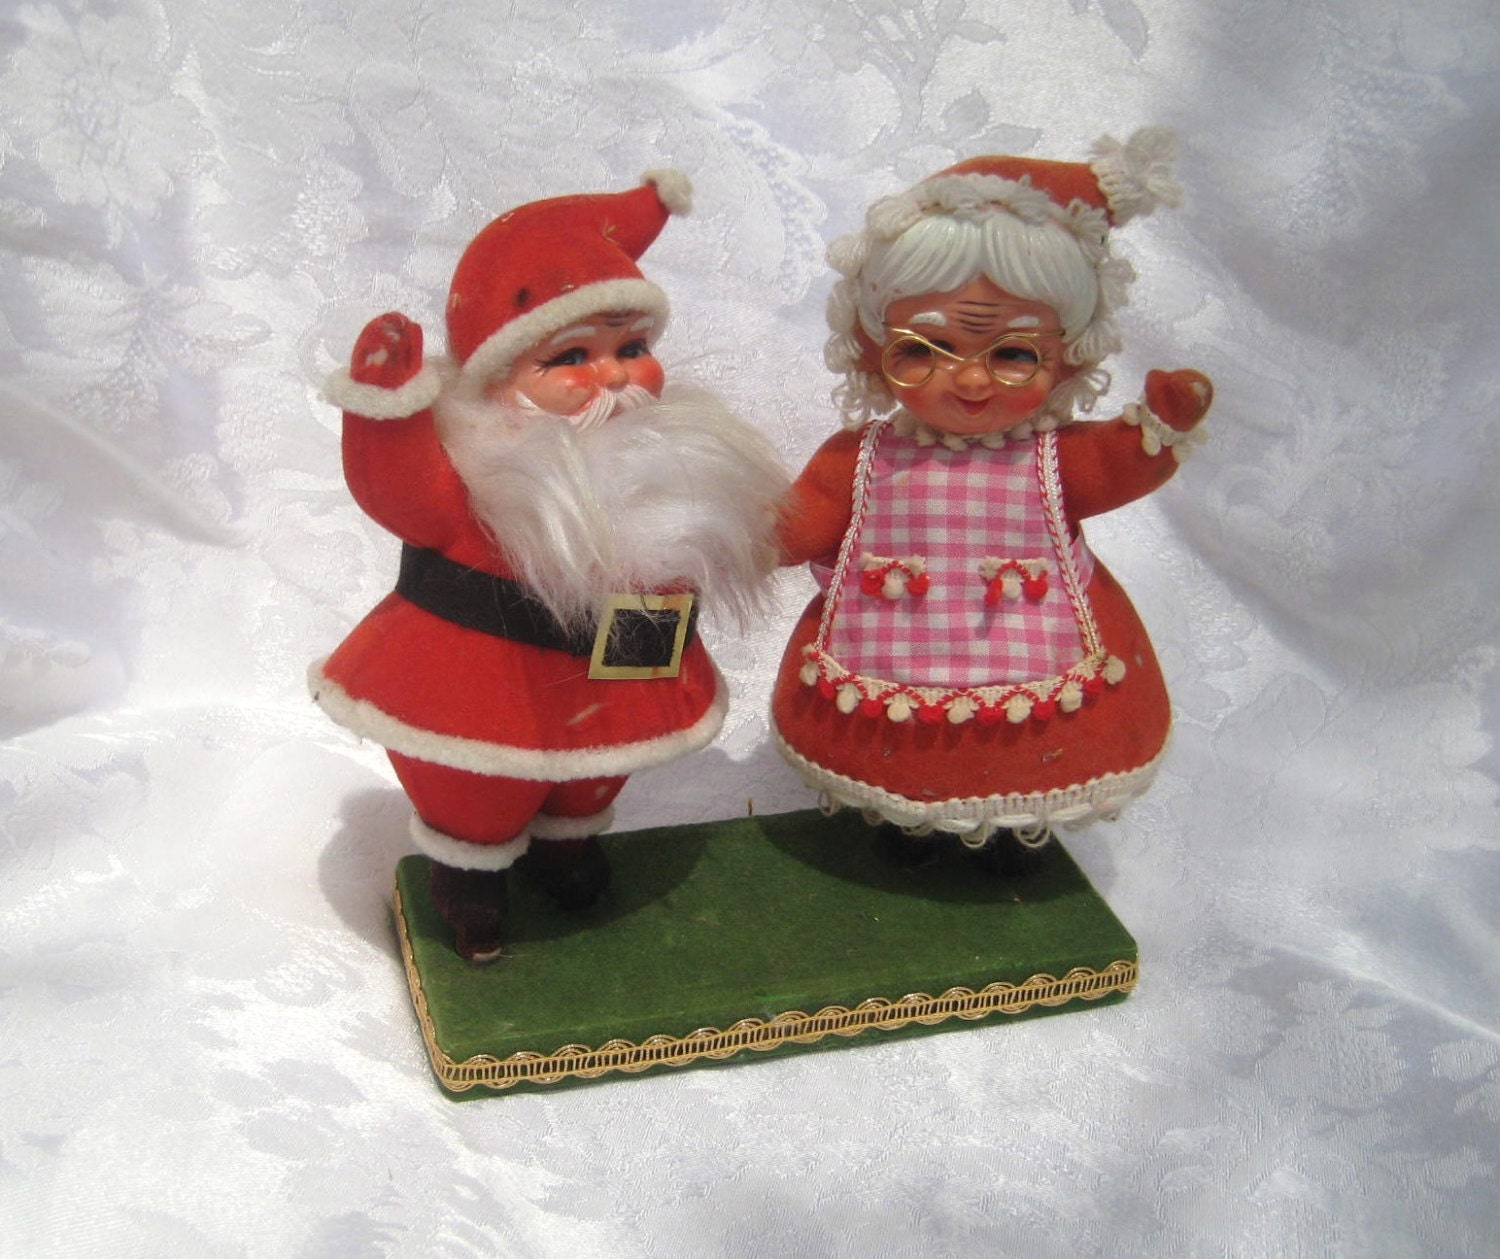 Lot Of 5 Vintage Christmas Decorations Kitsch Santa Claus: Santa Clause And Mrs. Clause Figurine Vintage Santa Clause